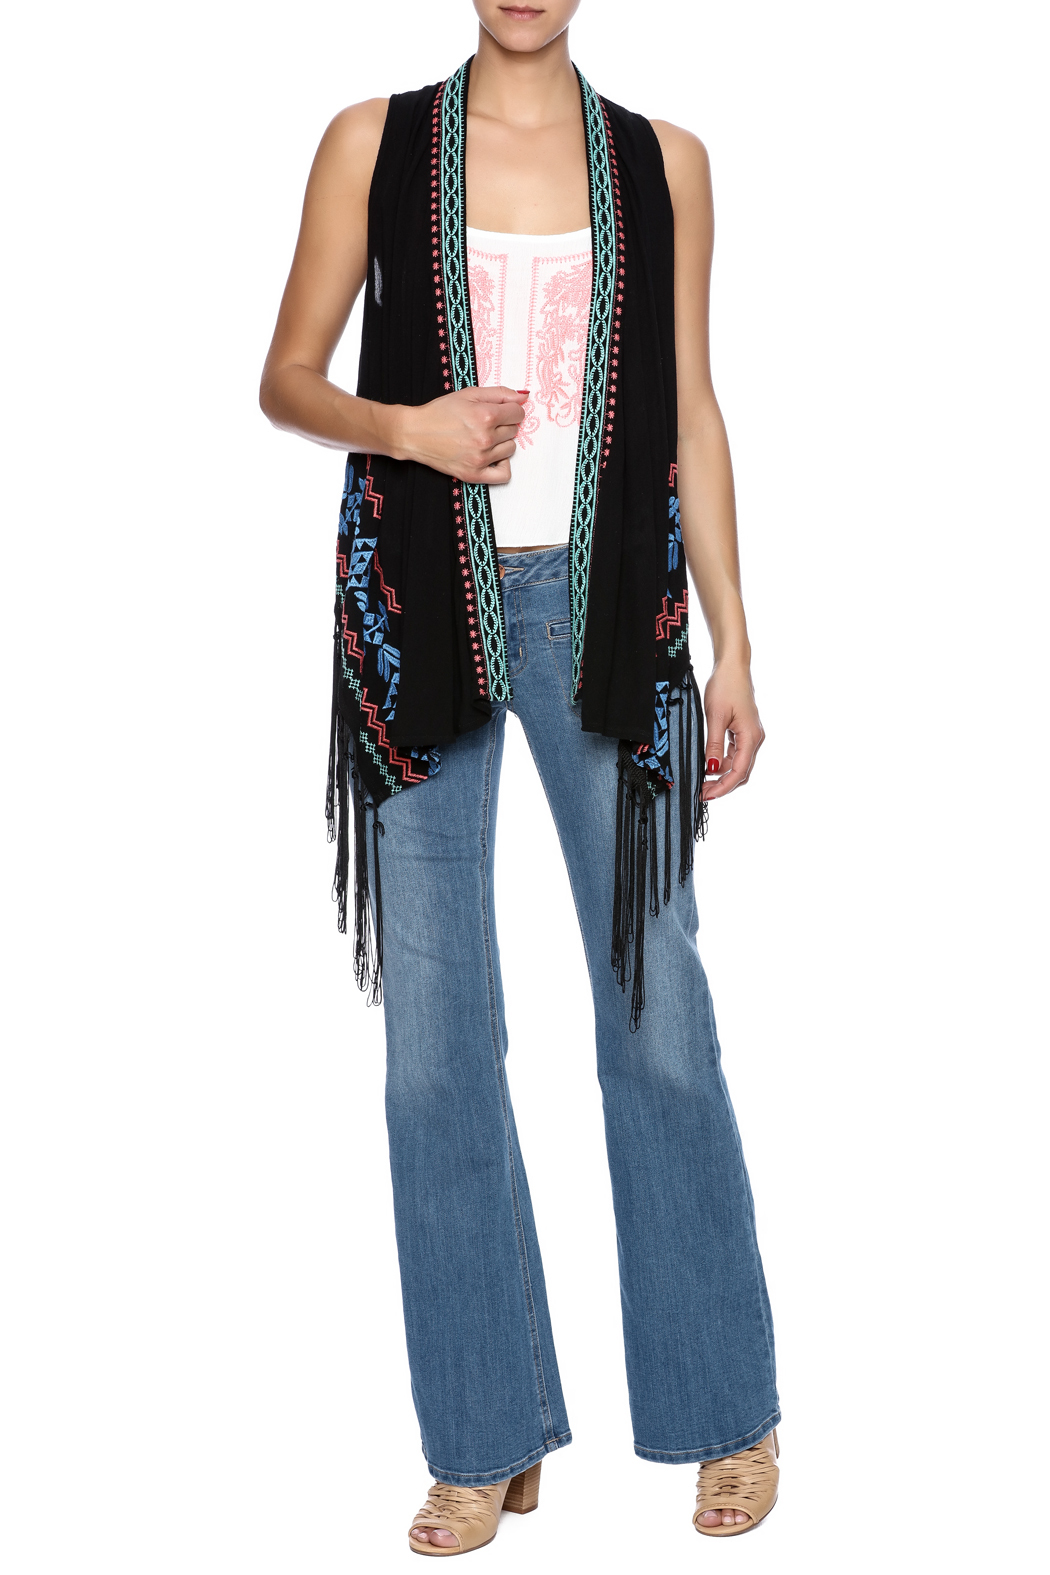 Umgee USA Embroidered Fringe Vest - Front Full Image